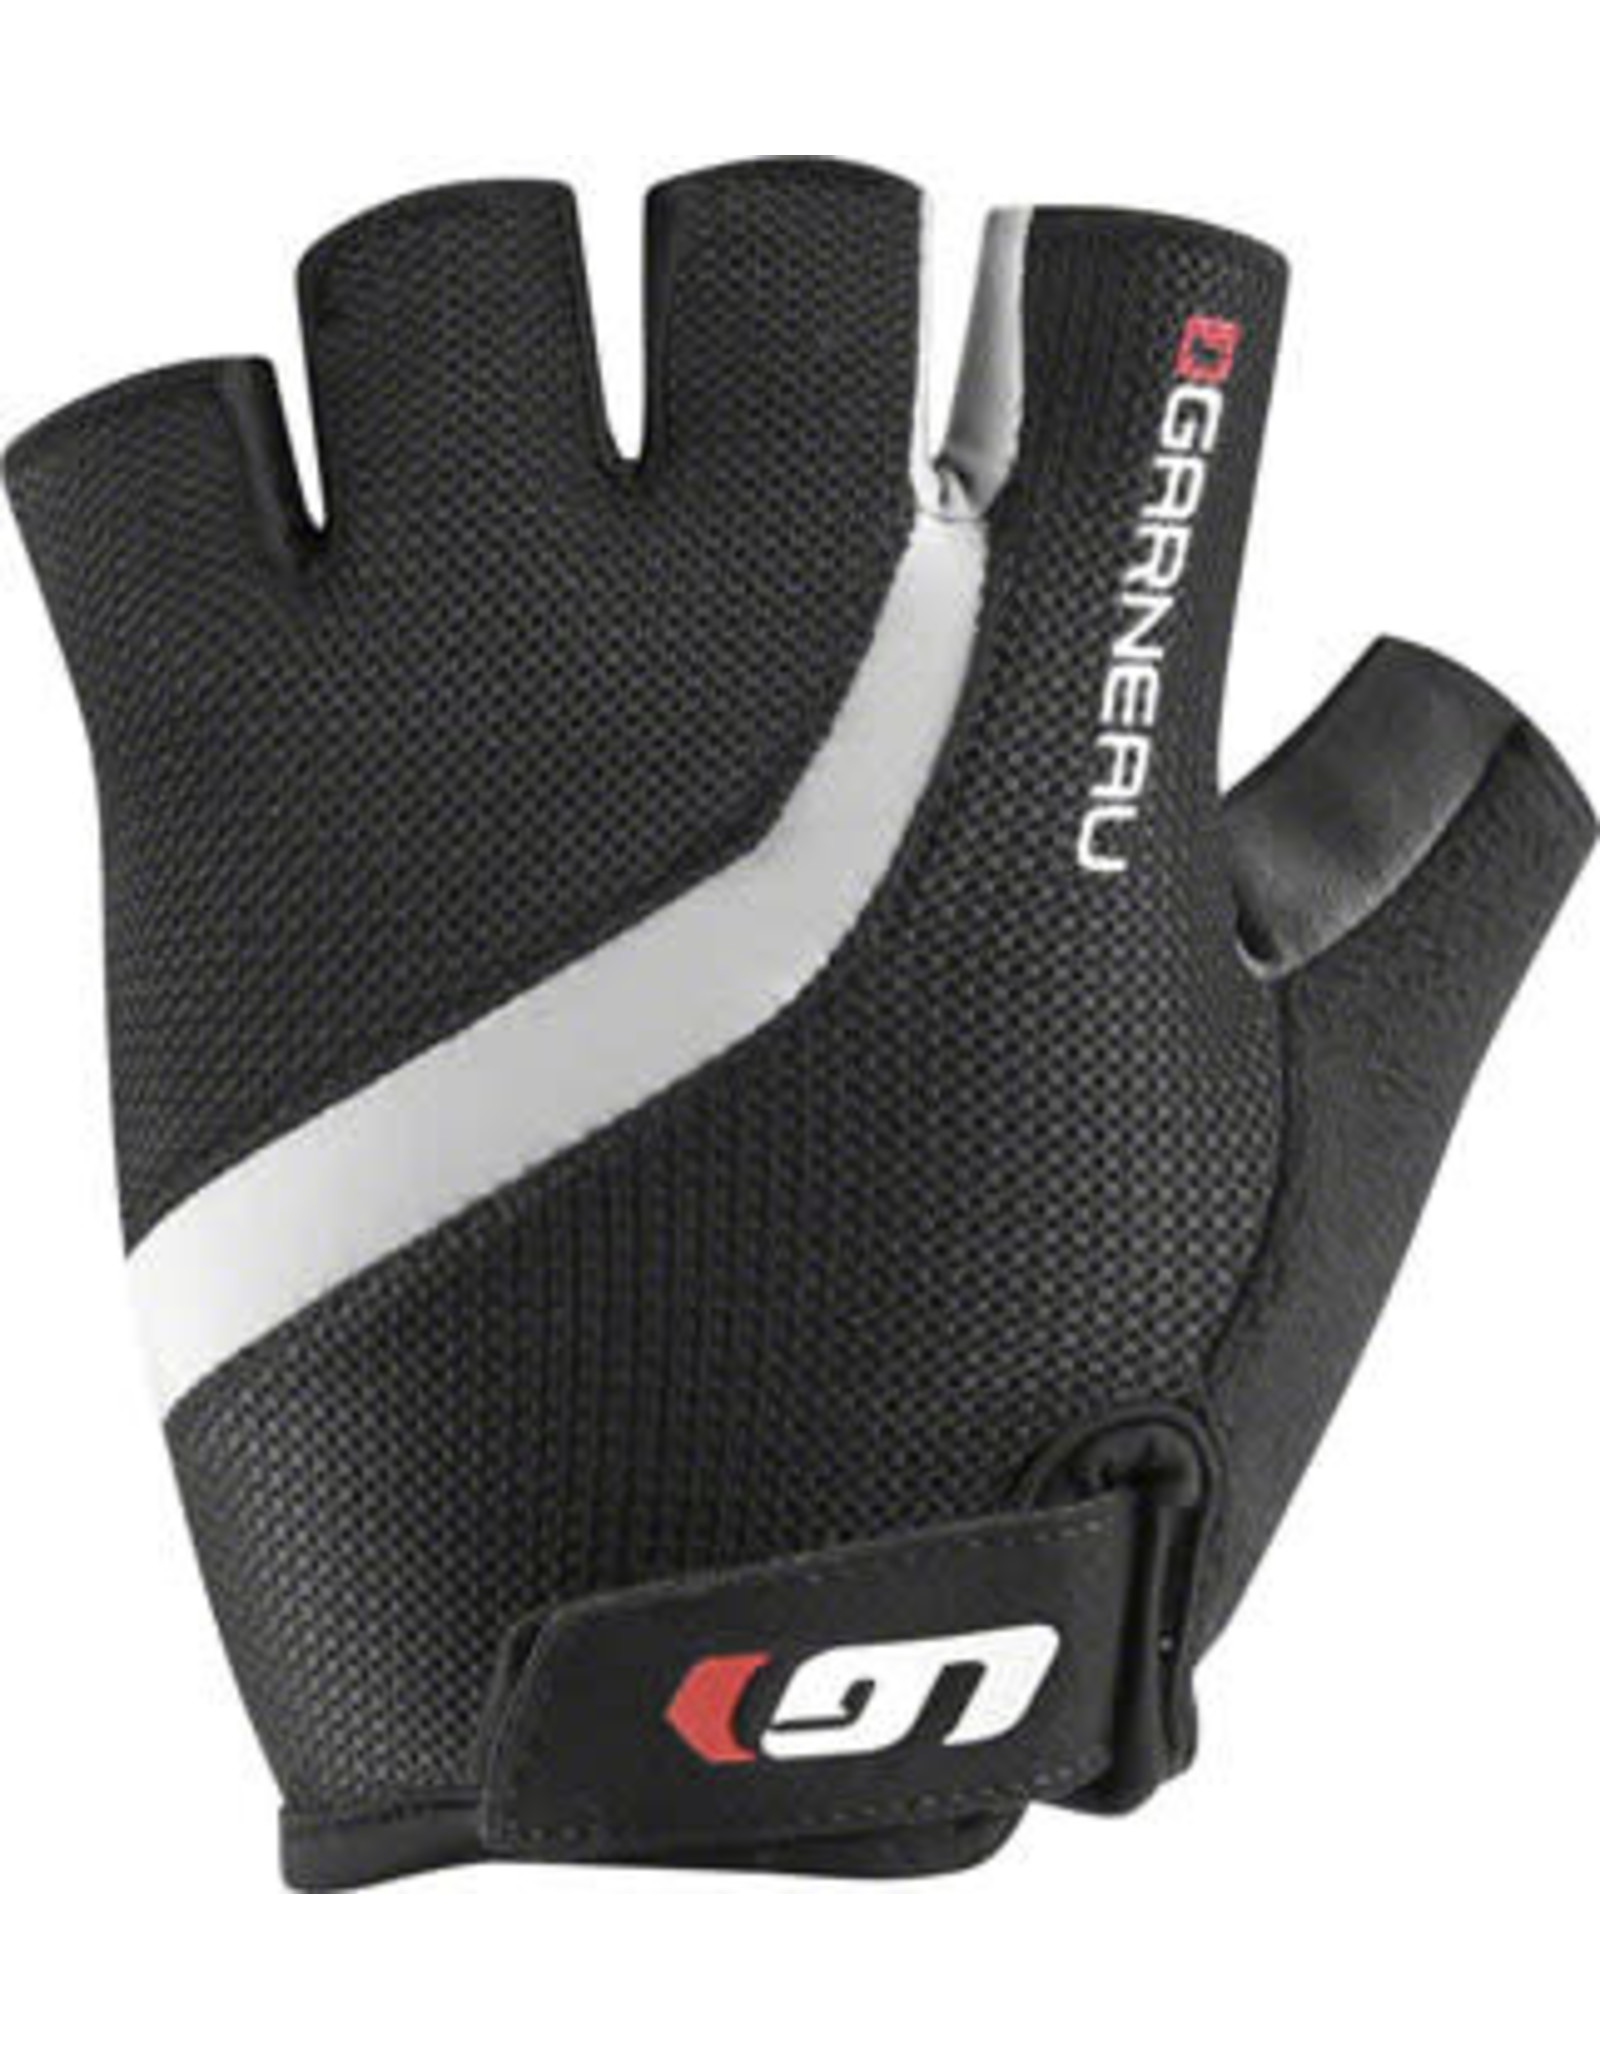 Garneau Biogel RX-V Men's Glove: Black MD